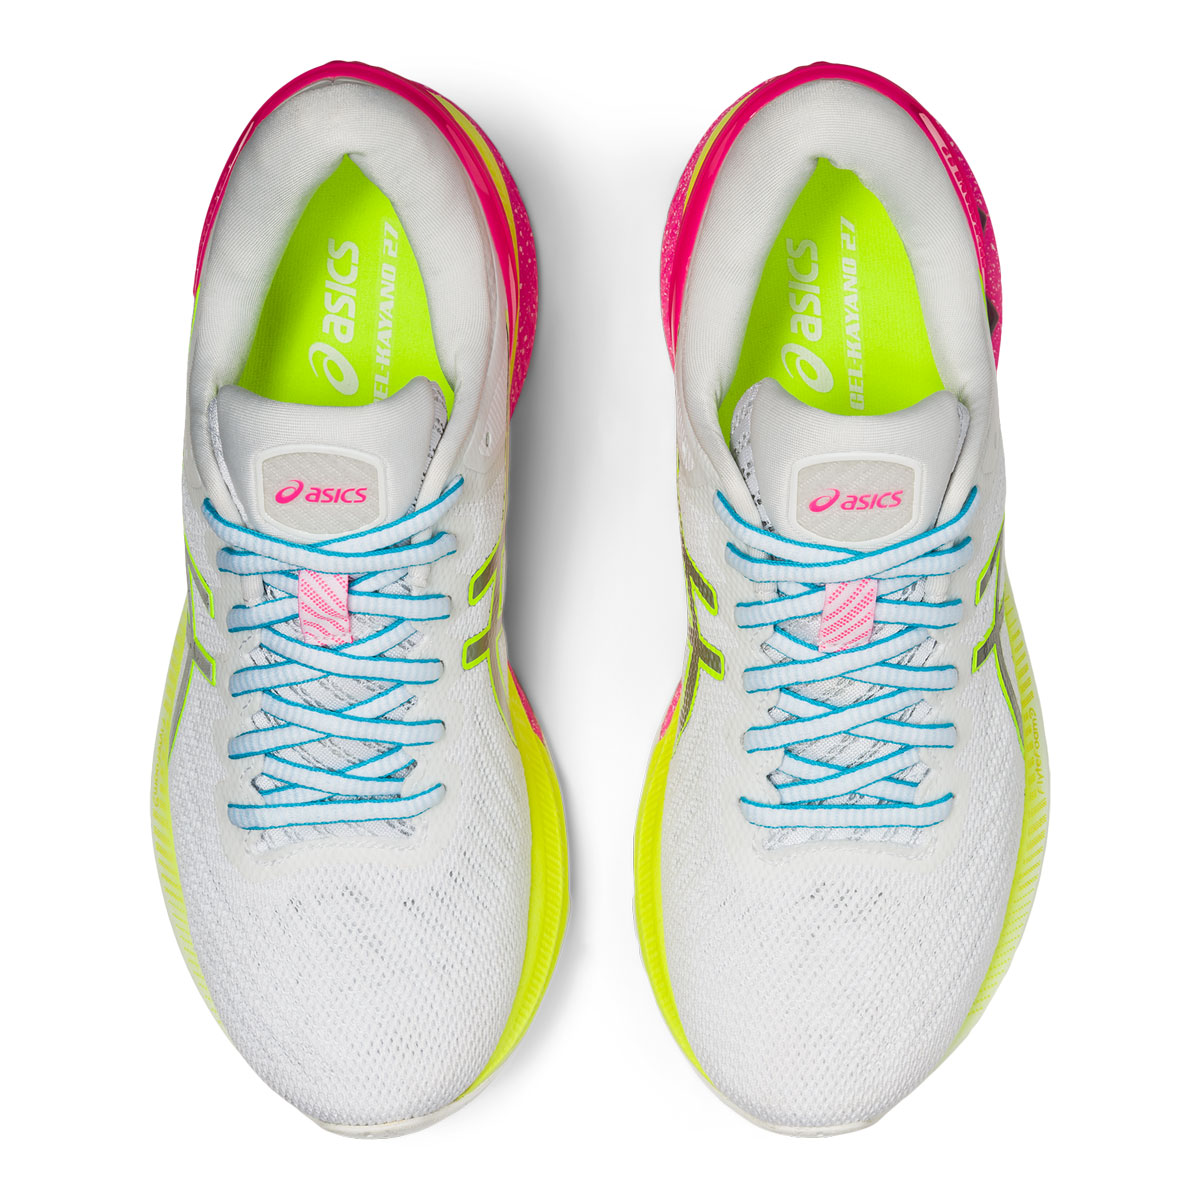 Women's Asics GEL-Kayano 27 Lite-Show Running Shoe - Color: White/Pure Silv (Regular Width) - Size: 5, White/Pure Silver, large, image 6